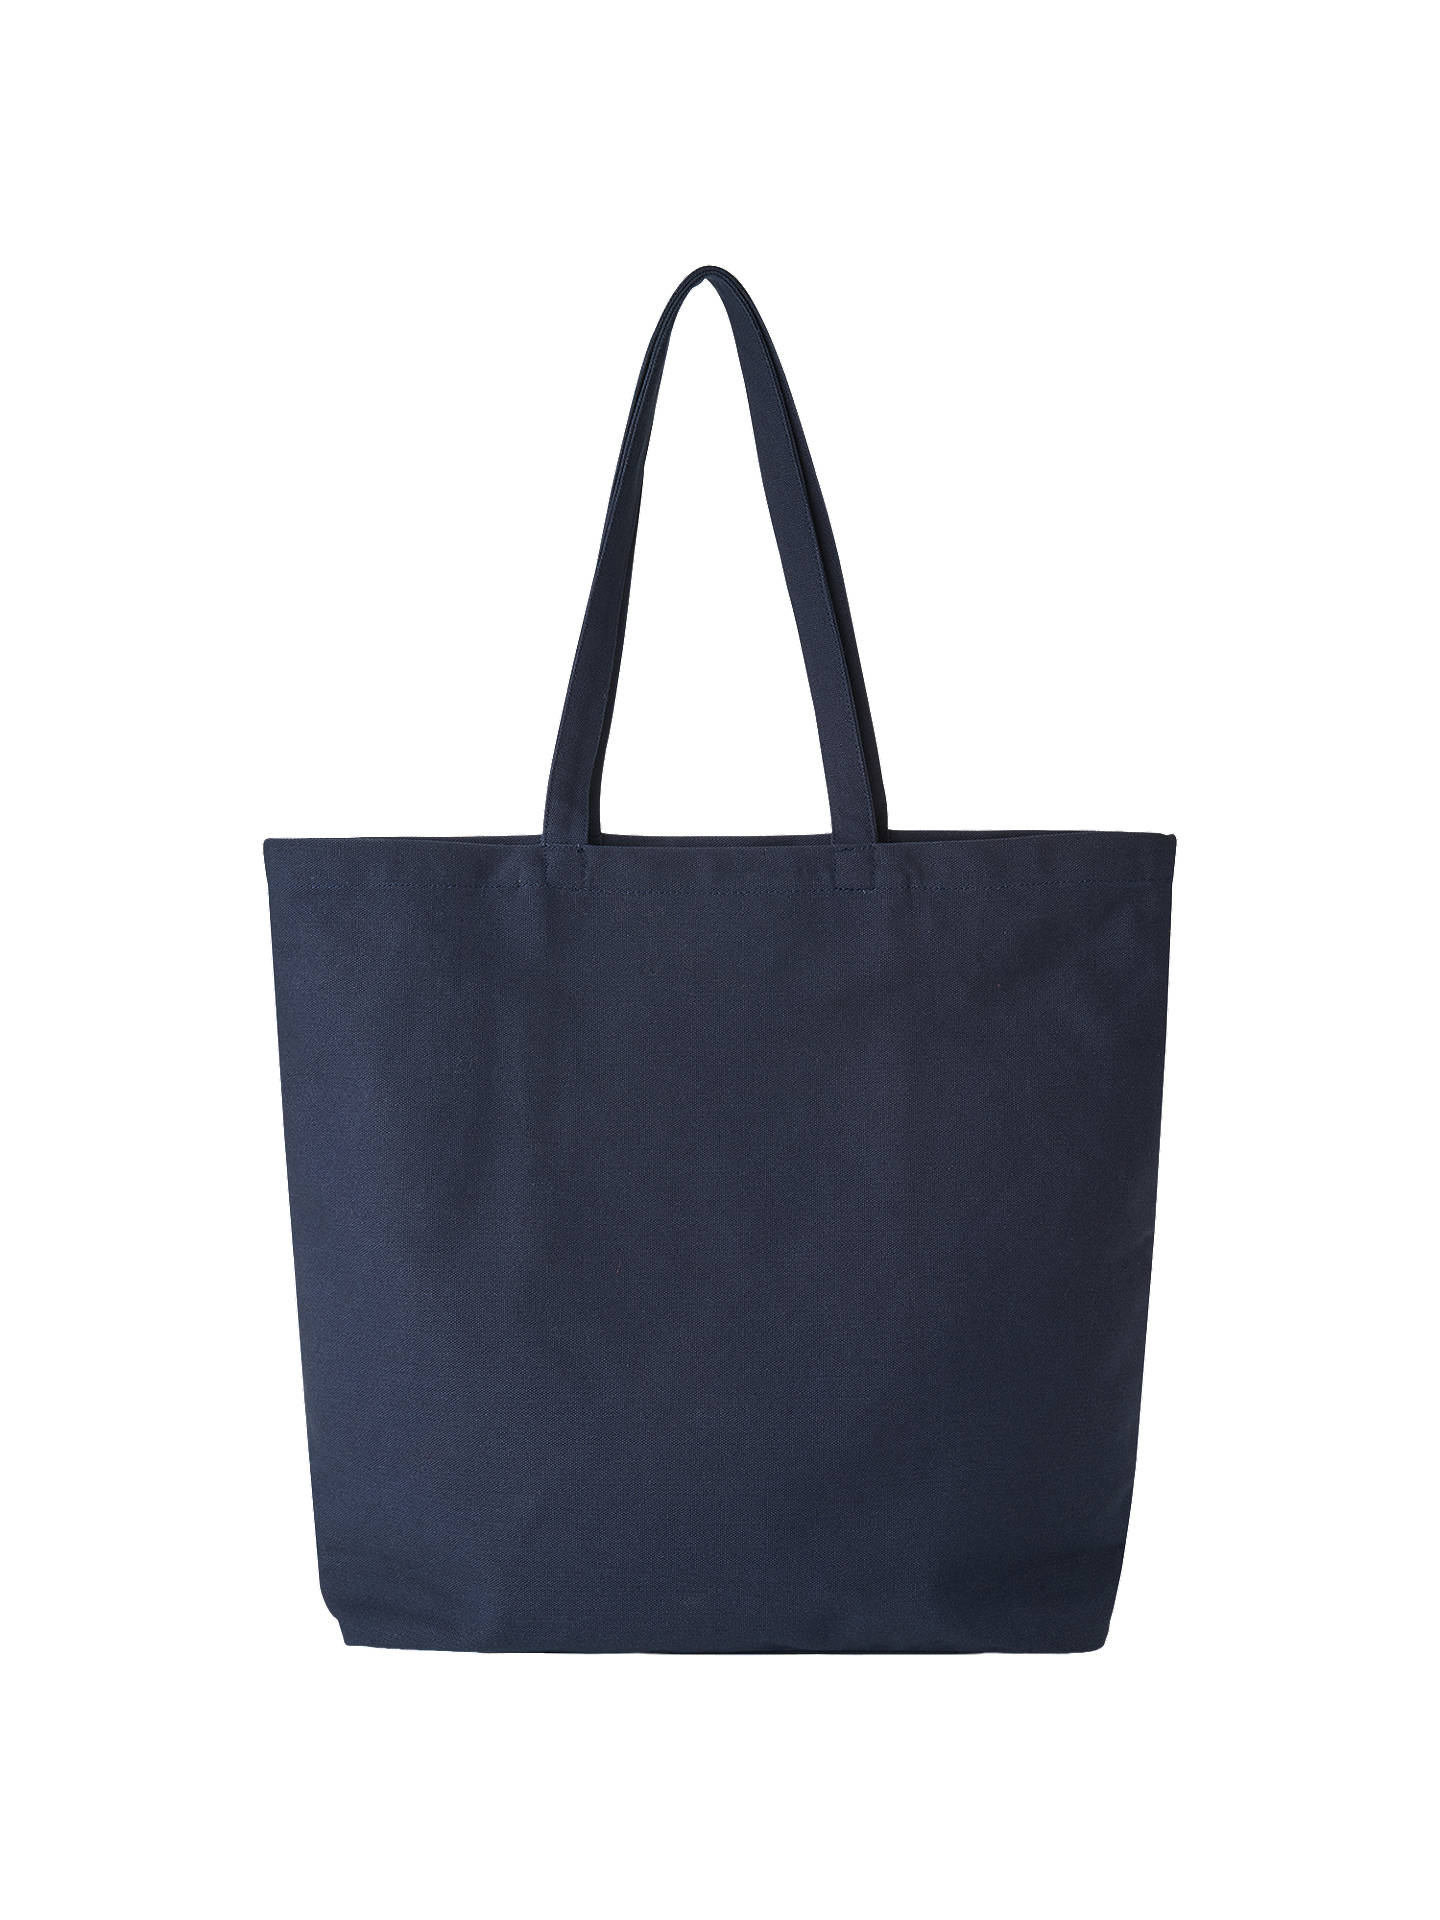 BuyWhistles Vive Les Vacances Tote Bag, Navy Online at johnlewis.com